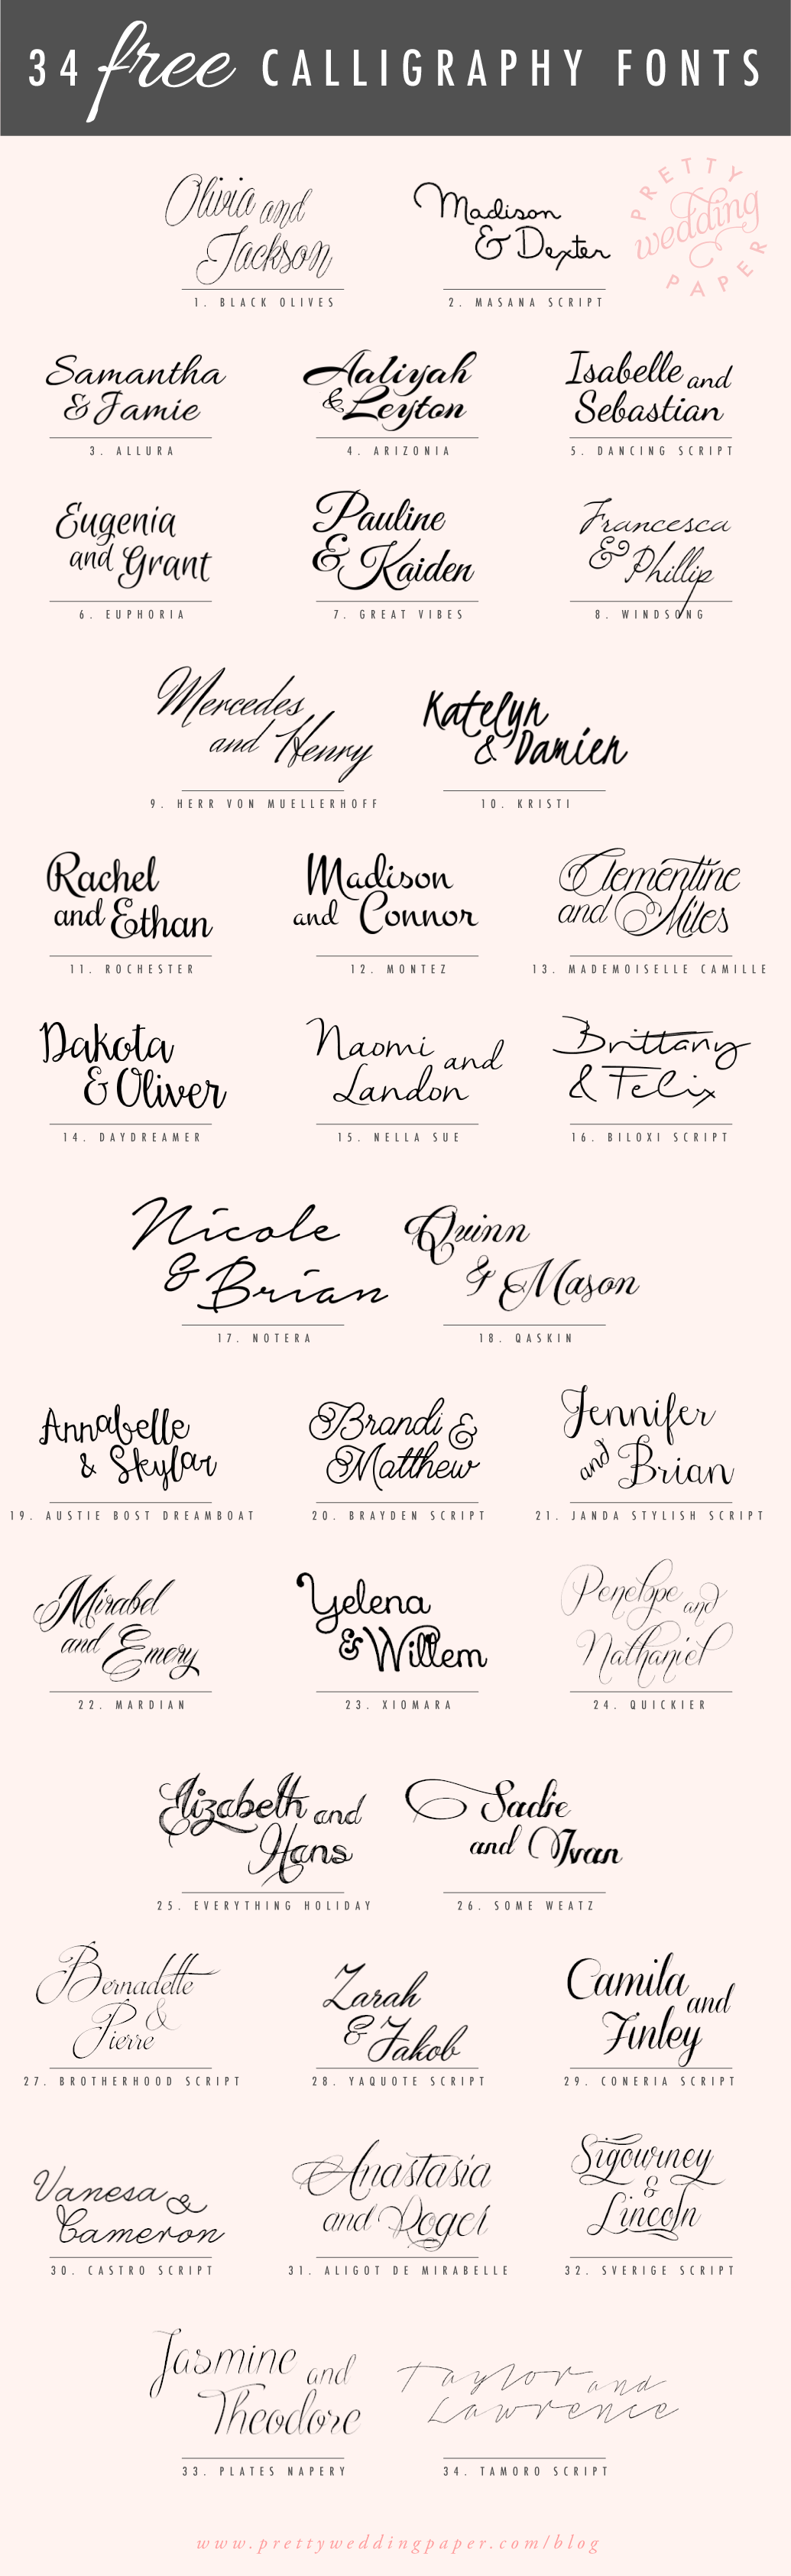 Free illustration g typography font font name free image on - 34 Free Calligraphy Script Fonts For Wedding Invitations